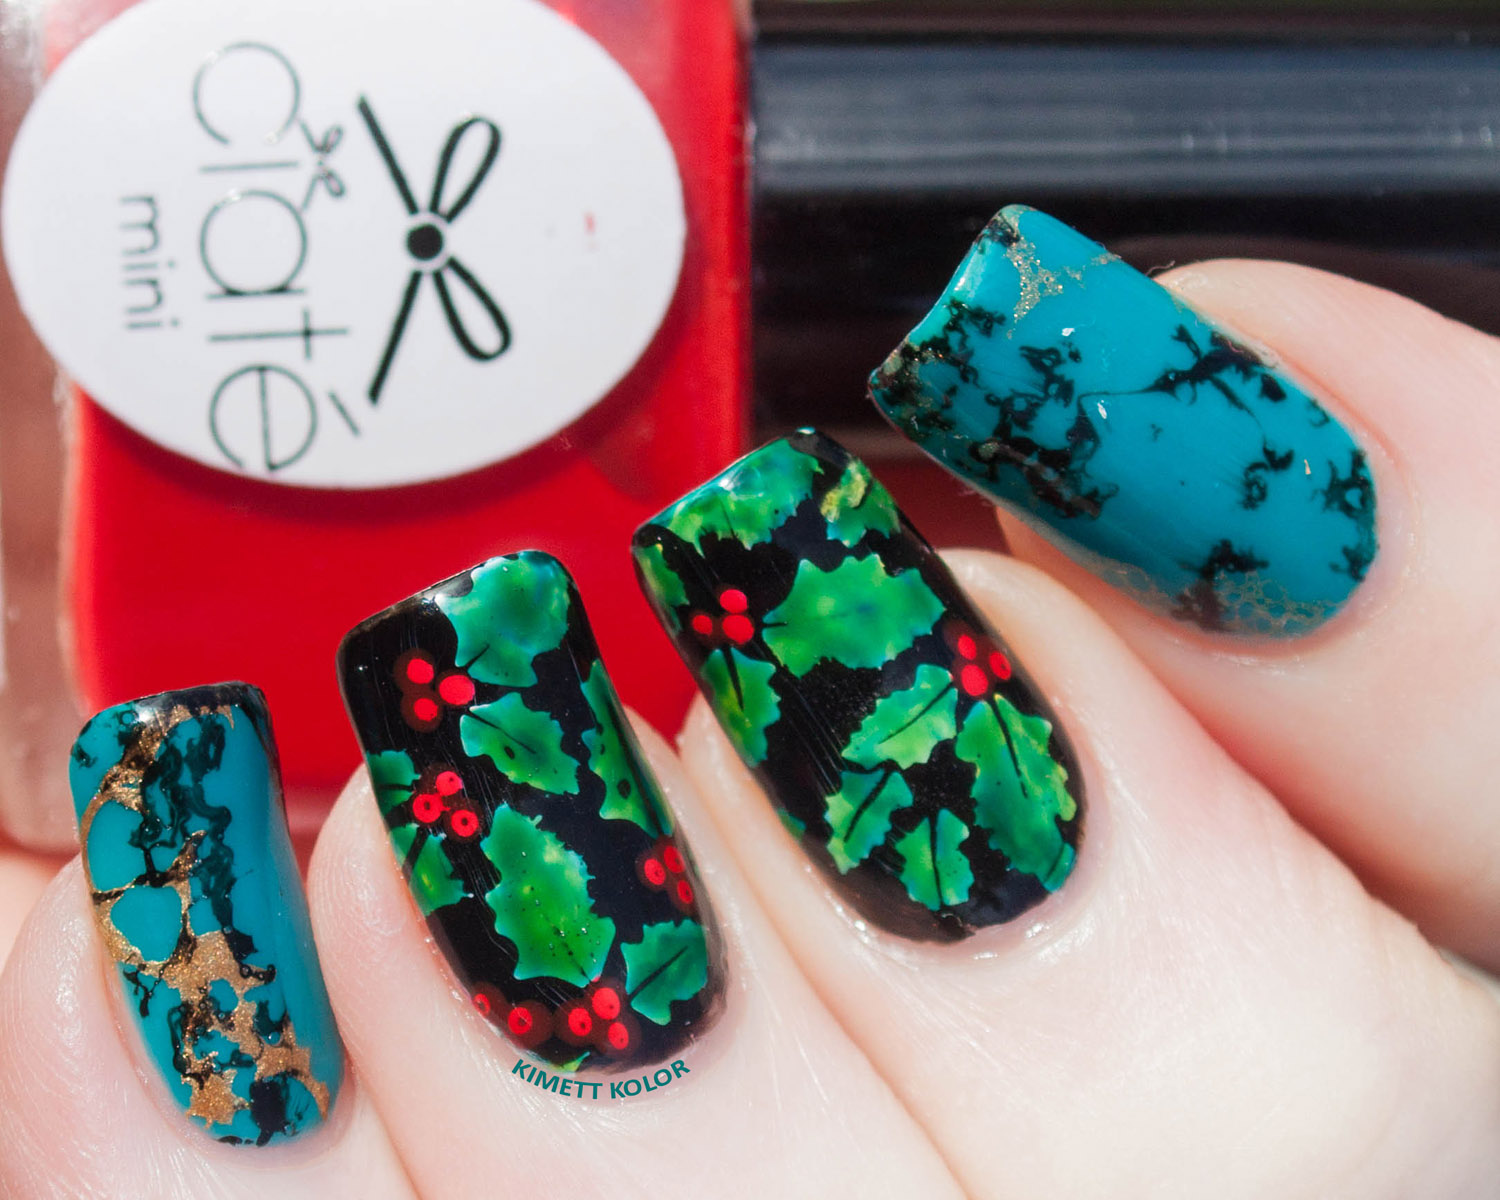 KimettKolor December Month Turquoise Holly Nail Art